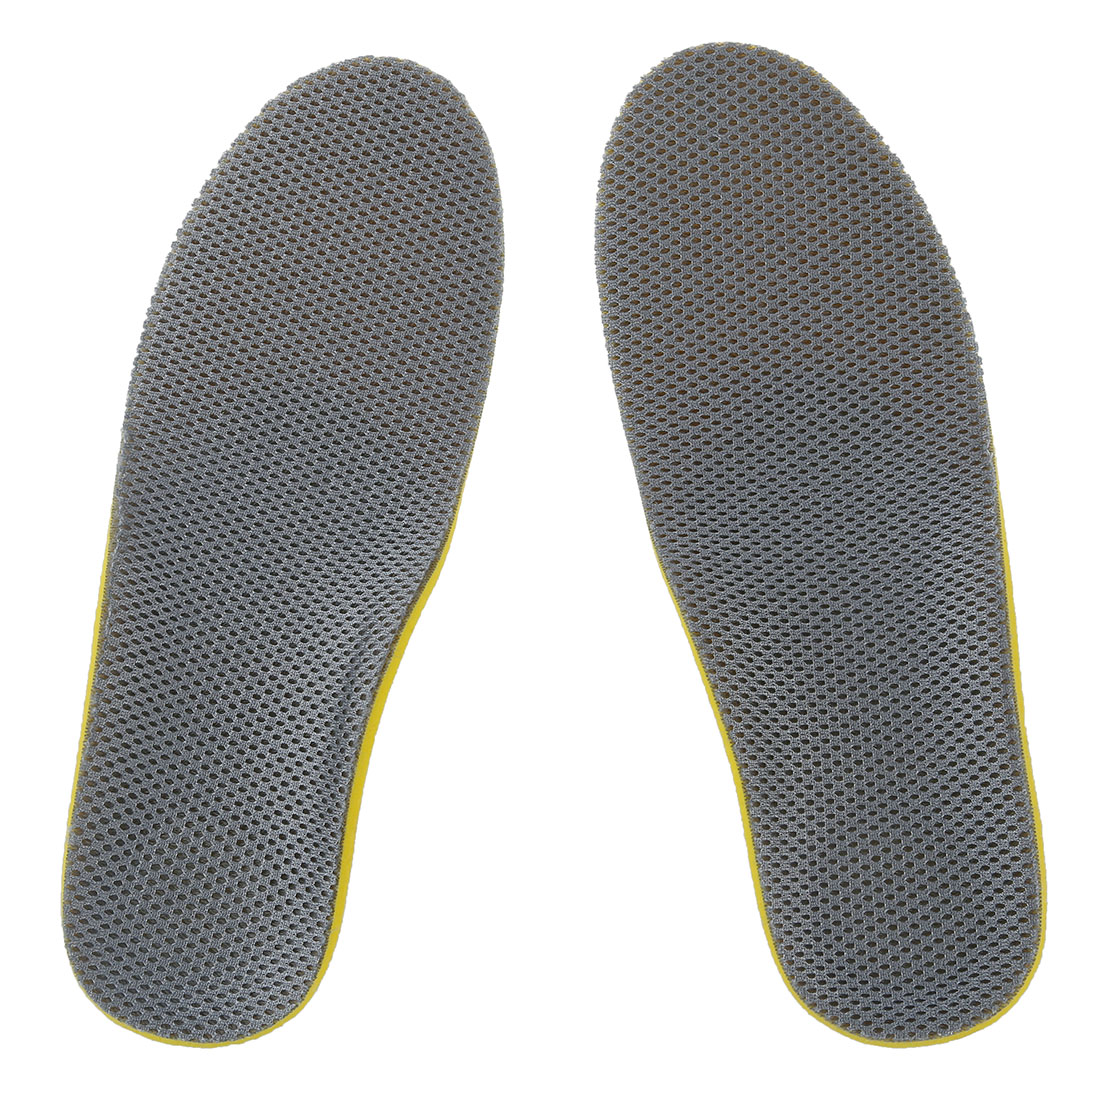 2018 Hot StyleComfortable Orthotic Shoes Insoles Inserts High Arch Support Pad (S) yellow+Gray expfoot orthotic arch support shoe pad orthopedic insoles pu insoles for shoes breathable foot pads massage sport insole 045